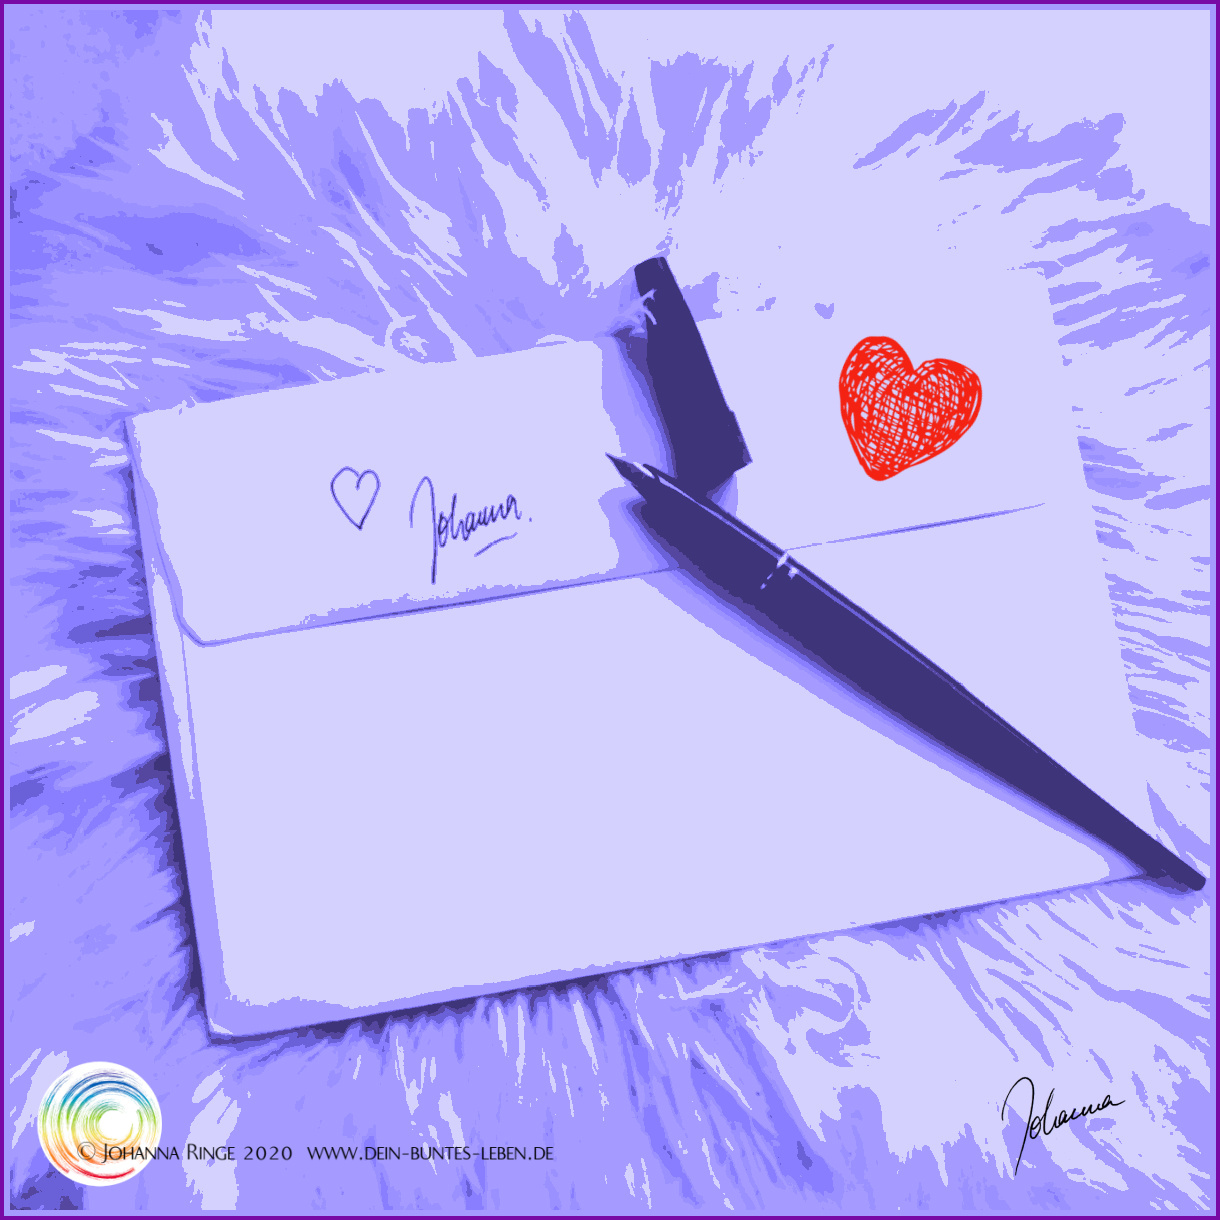 A Loveletter with a scibbled heart and a signature of Johanna©Johanna Ringe 2020 www.johannaringe.com